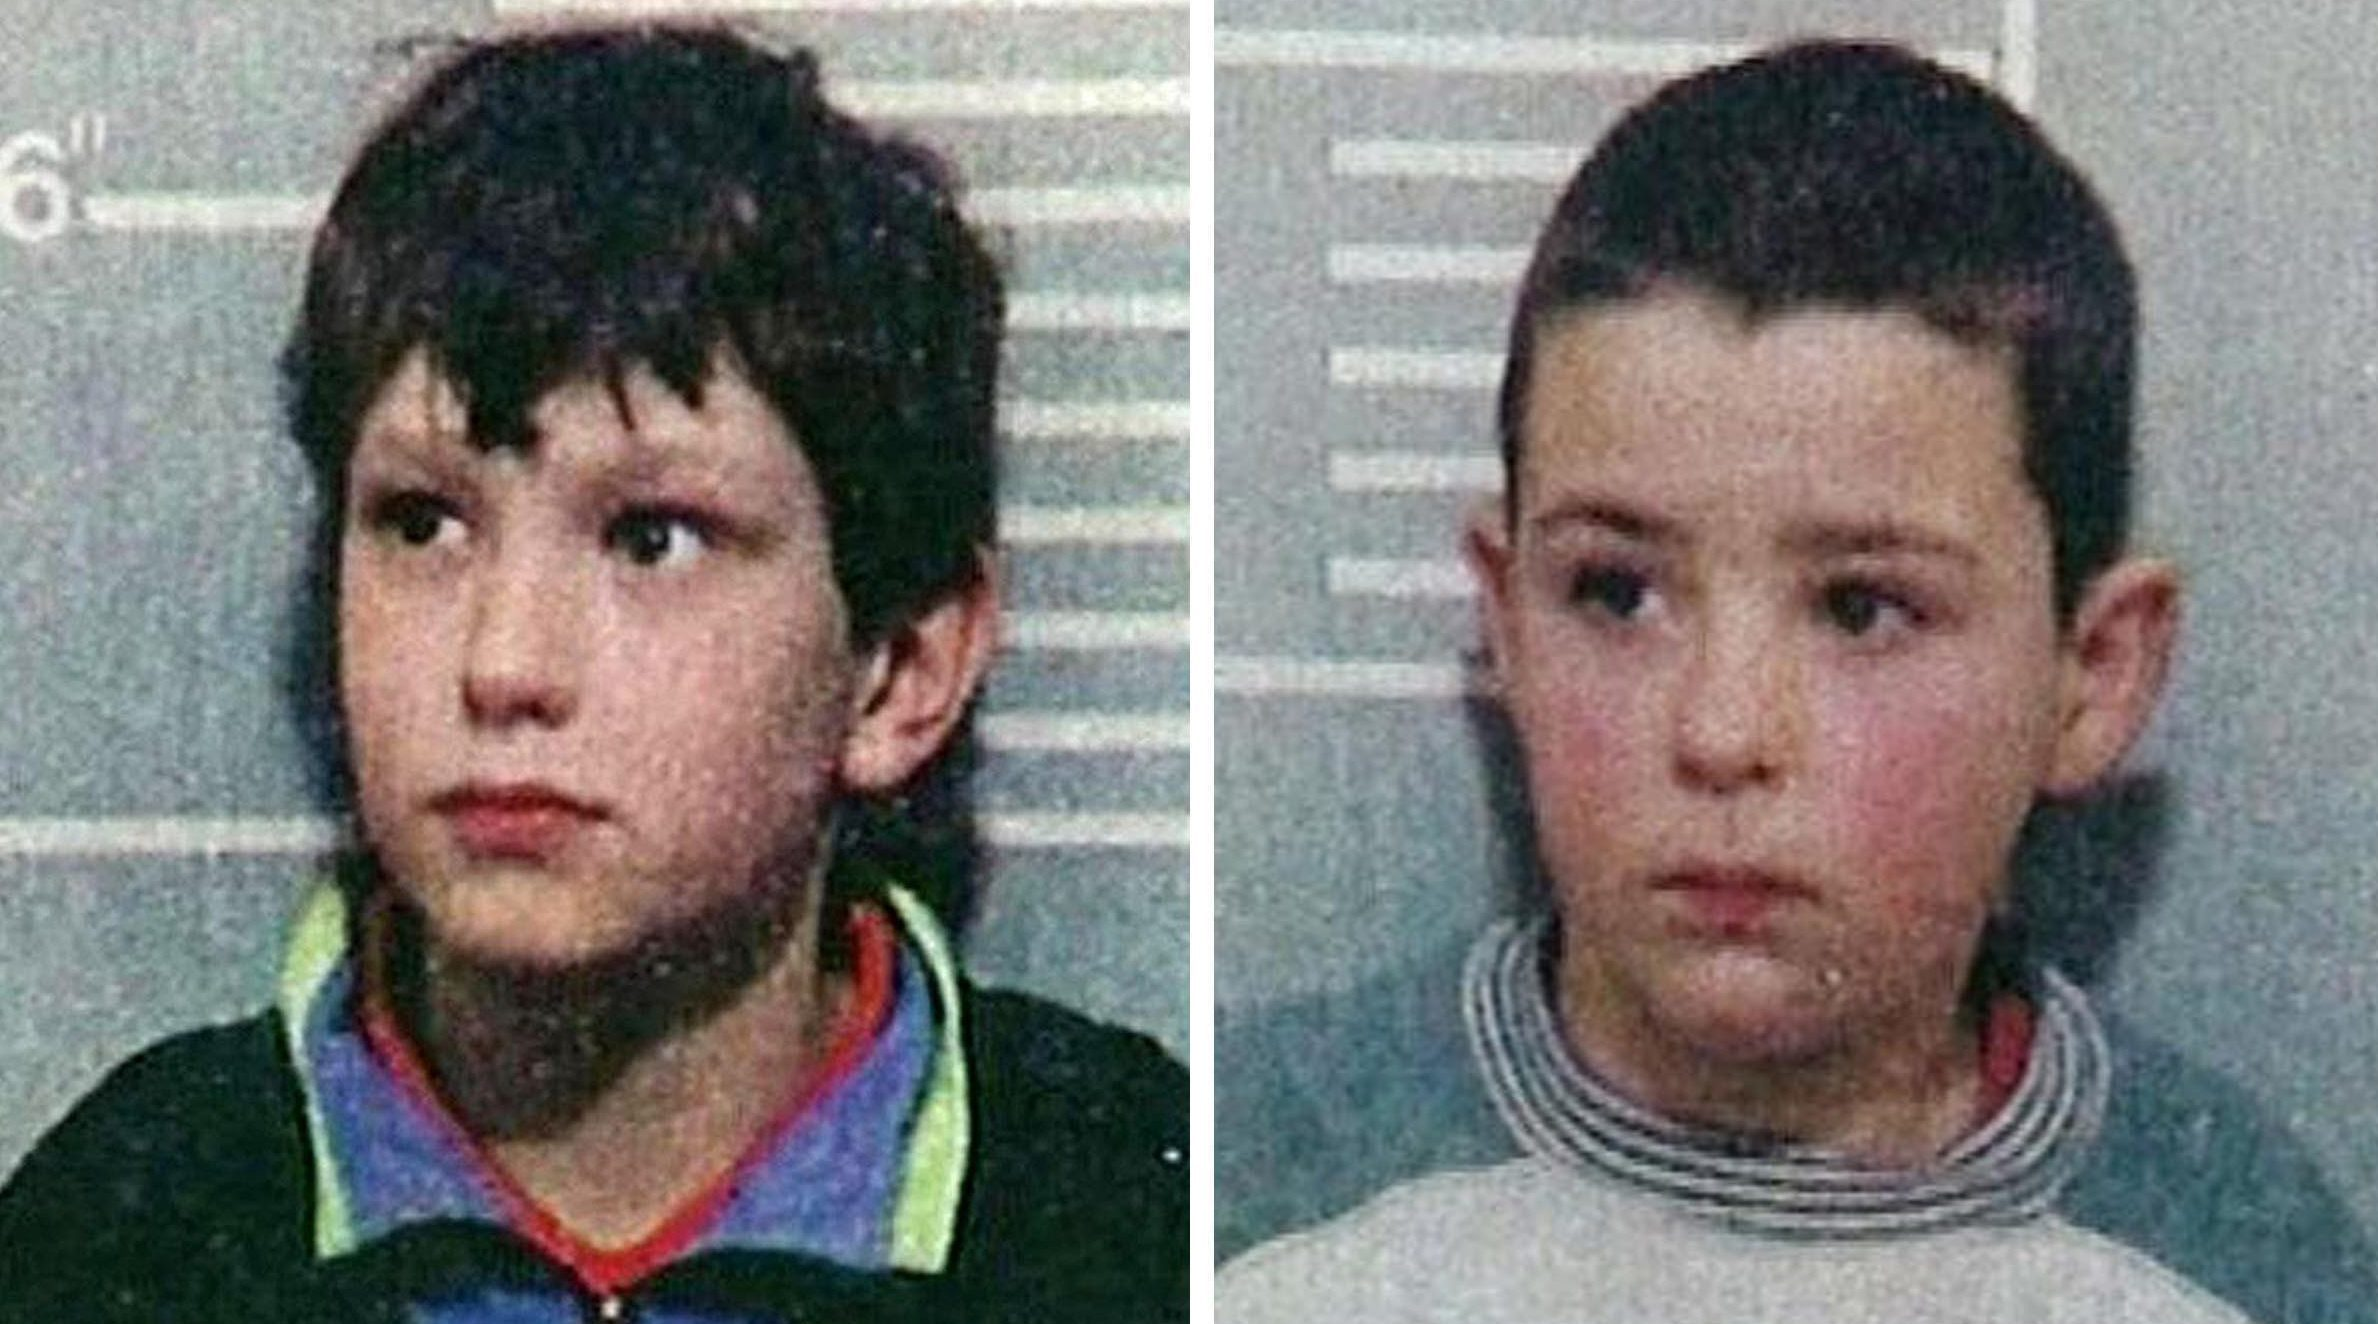 Jon Venables (left) and Robert Thompson were convicted of killing two-year-old James Bulger in 1993.